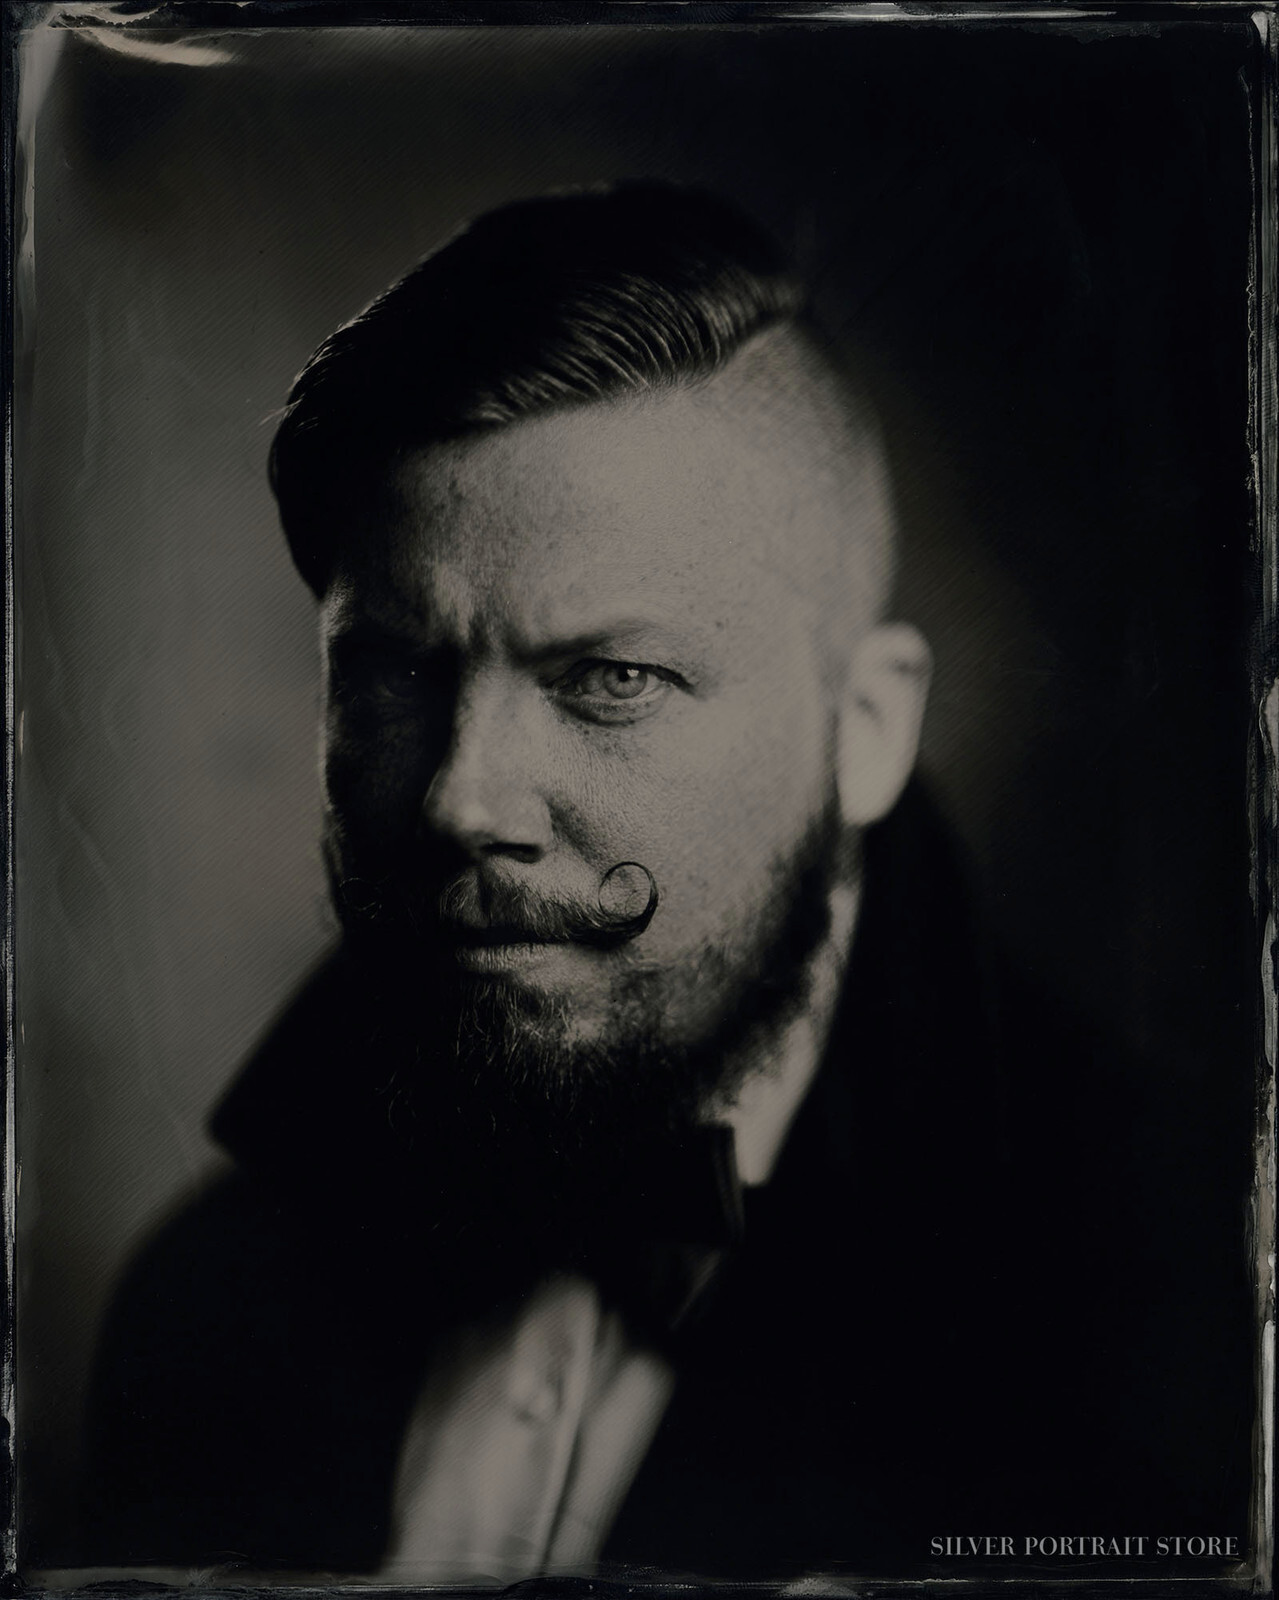 Christian-Silver Portrait Store-Wet plate collodion-Black glass Ambrotype 20 x 25 cm.